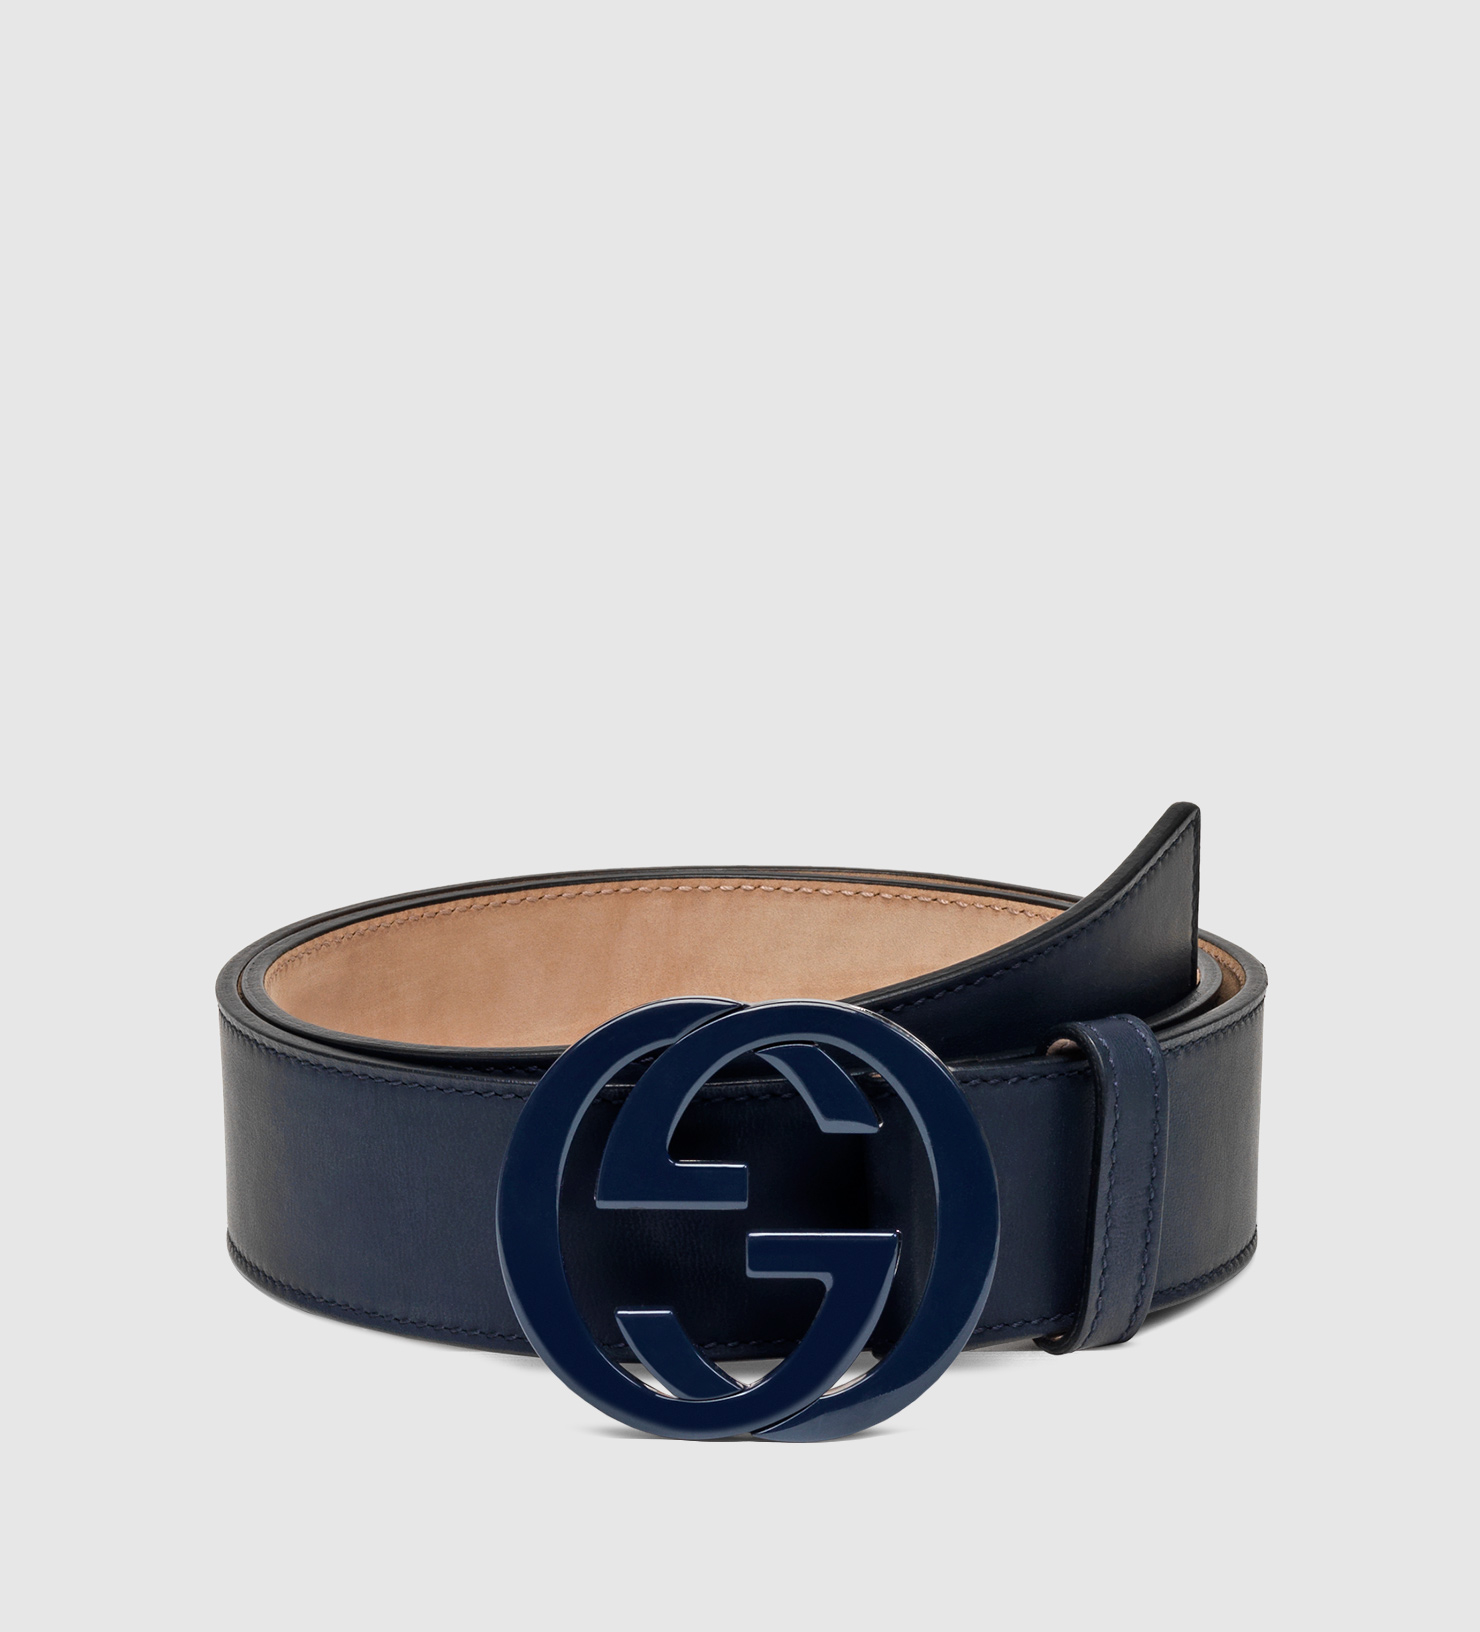 482a0ad7b ... Gucci Blet: Gucci Leather Belt With Interlocking G Buckle In